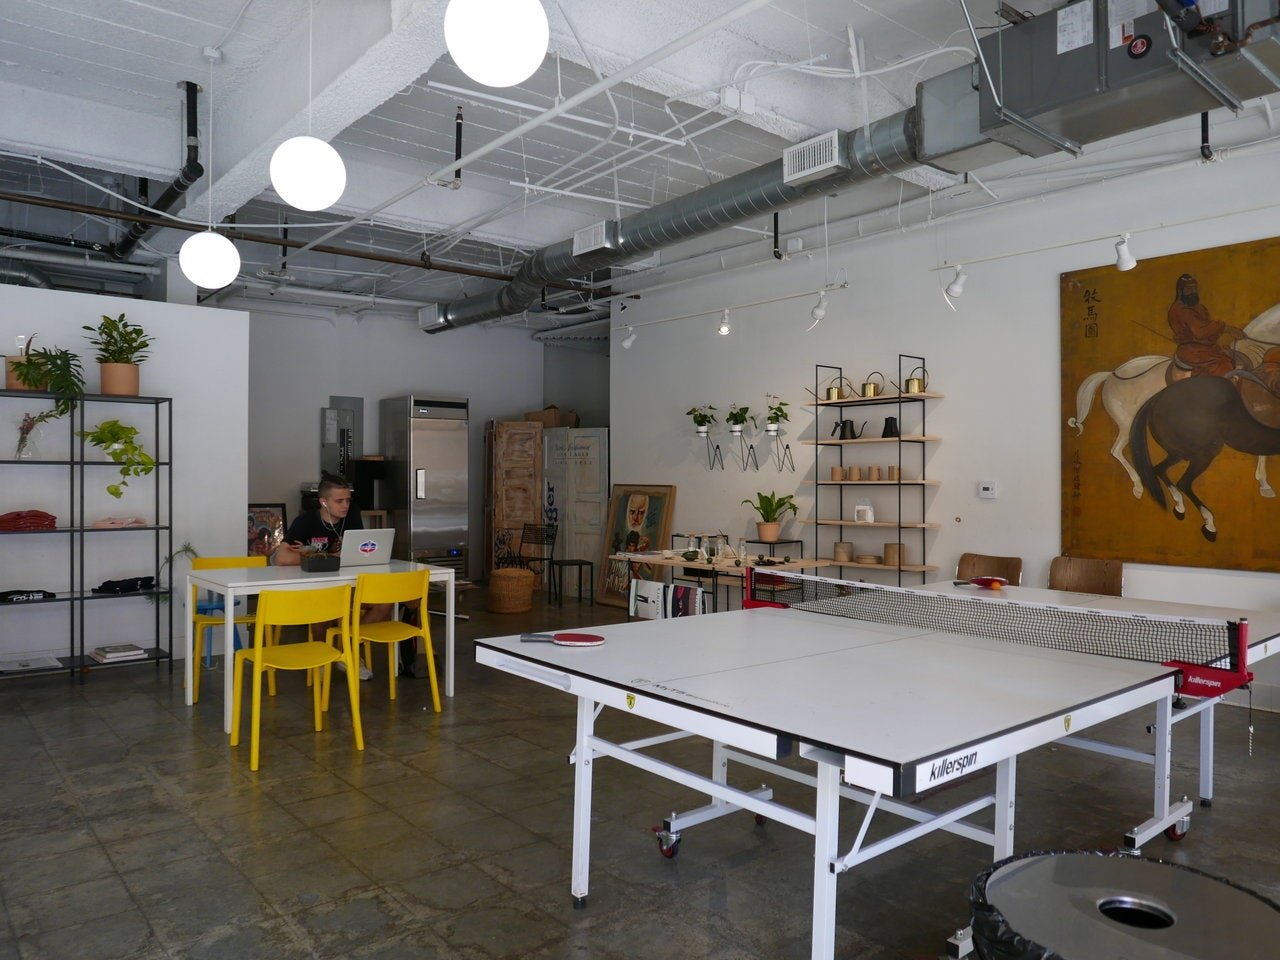 Coffee Hall in Chinatown